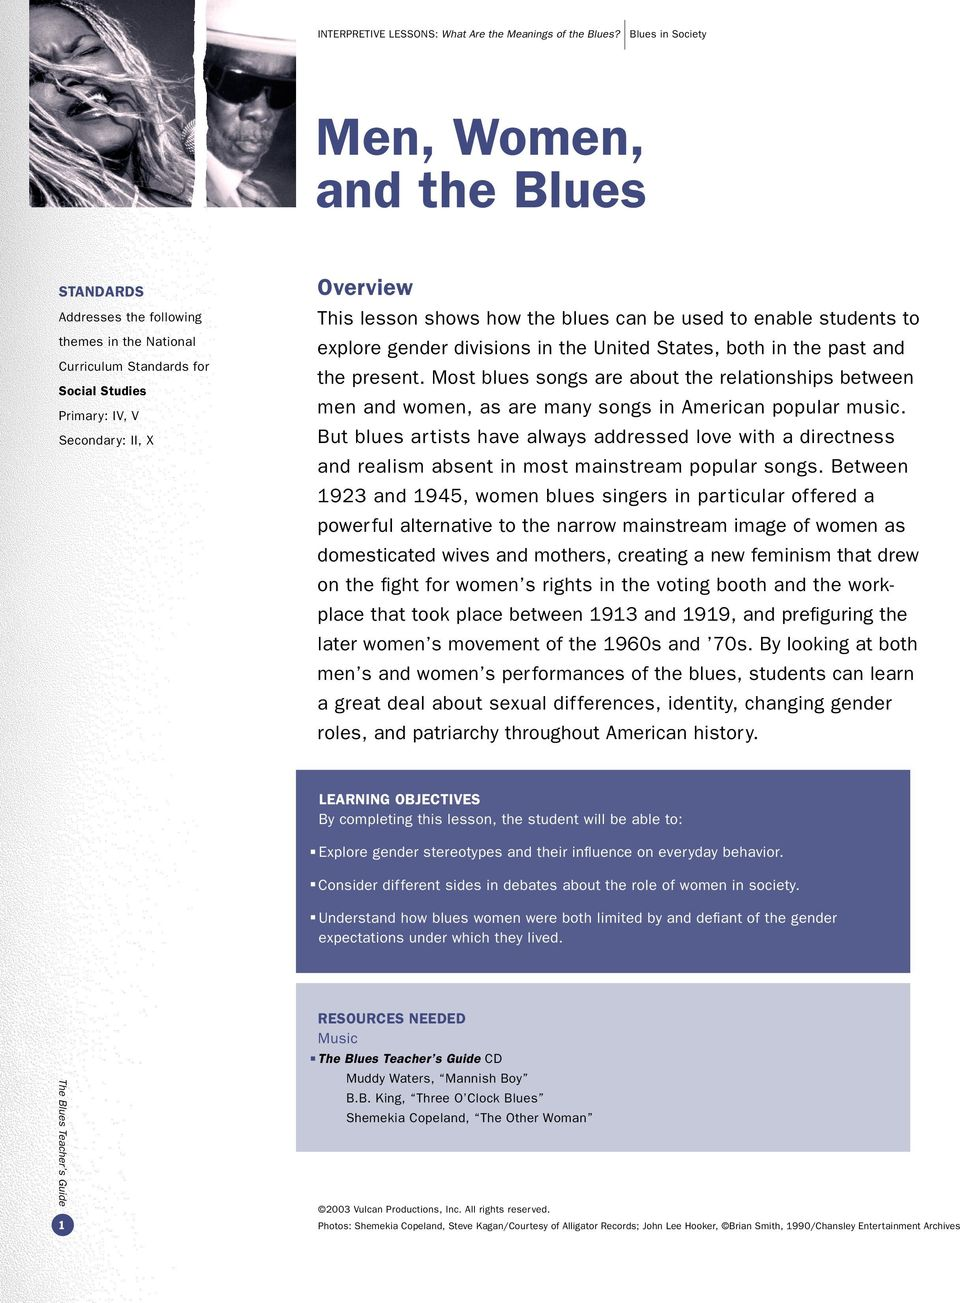 Most blues songs are about the relationships between men and women, as are many songs in American popular music.